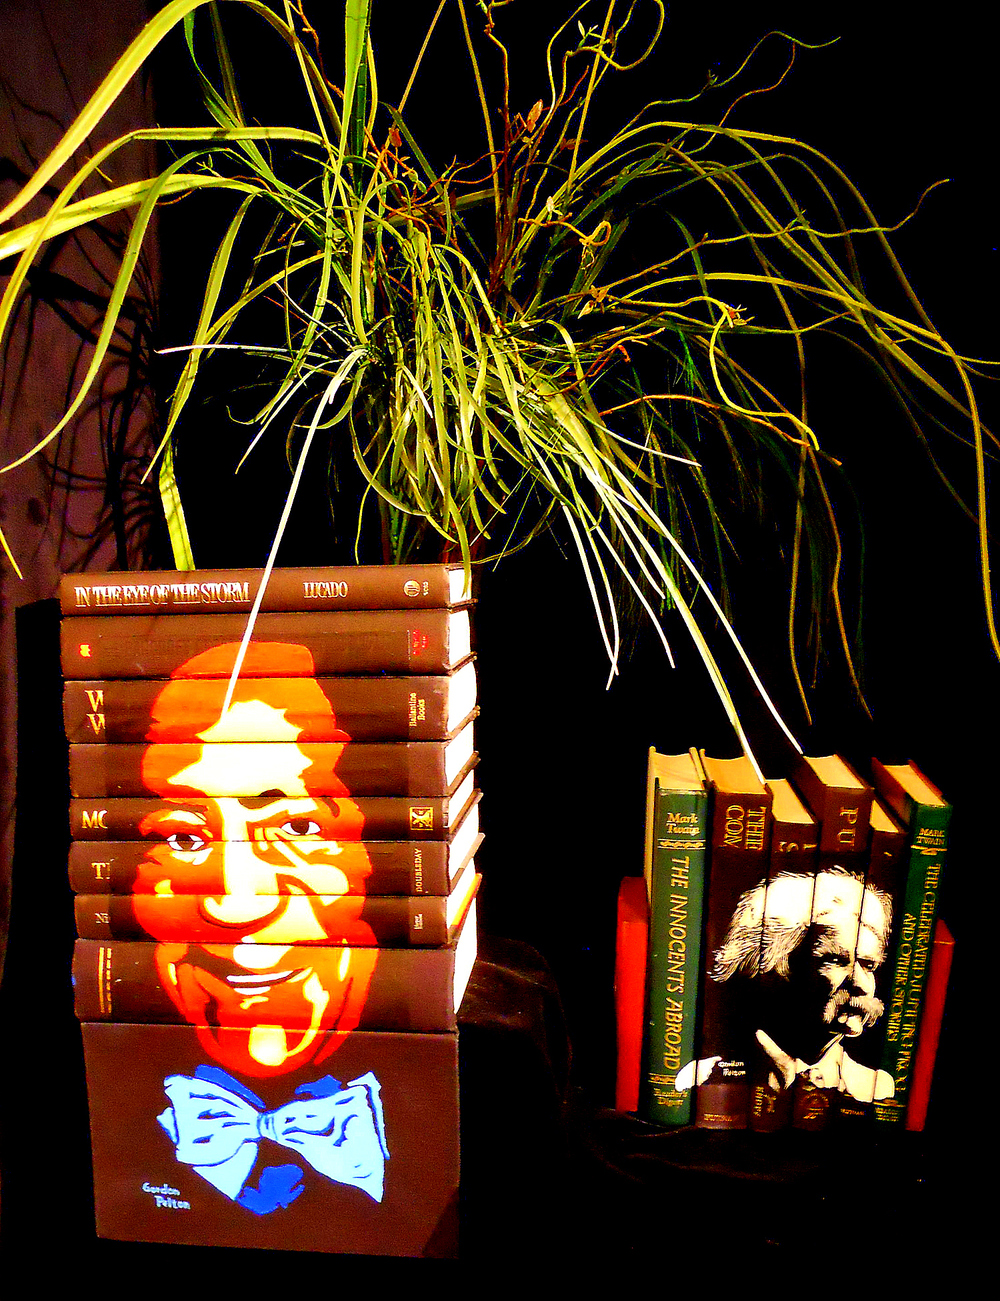 Cosby and Twain on Display Acrylic on Book Spines